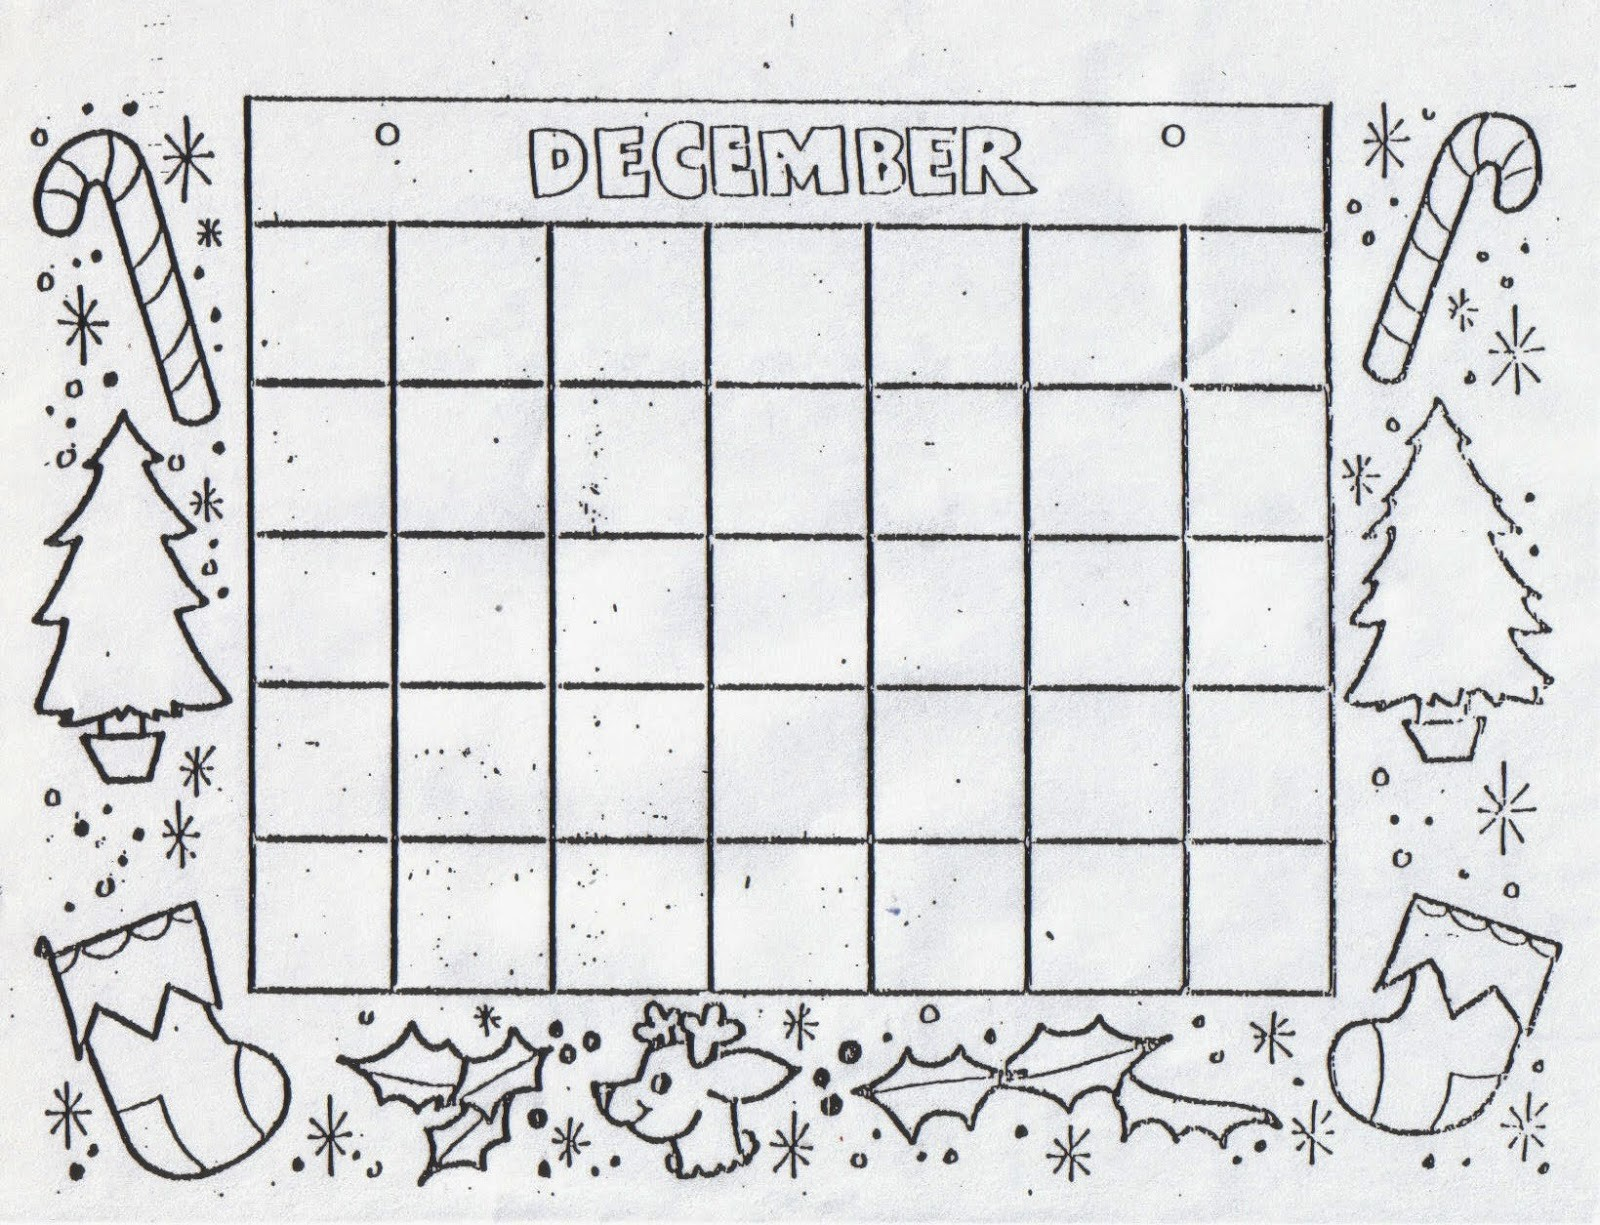 Blank Calendar to Fill In Best Of Kat S Almost Purrfect Home Free Blank Calendars to Color